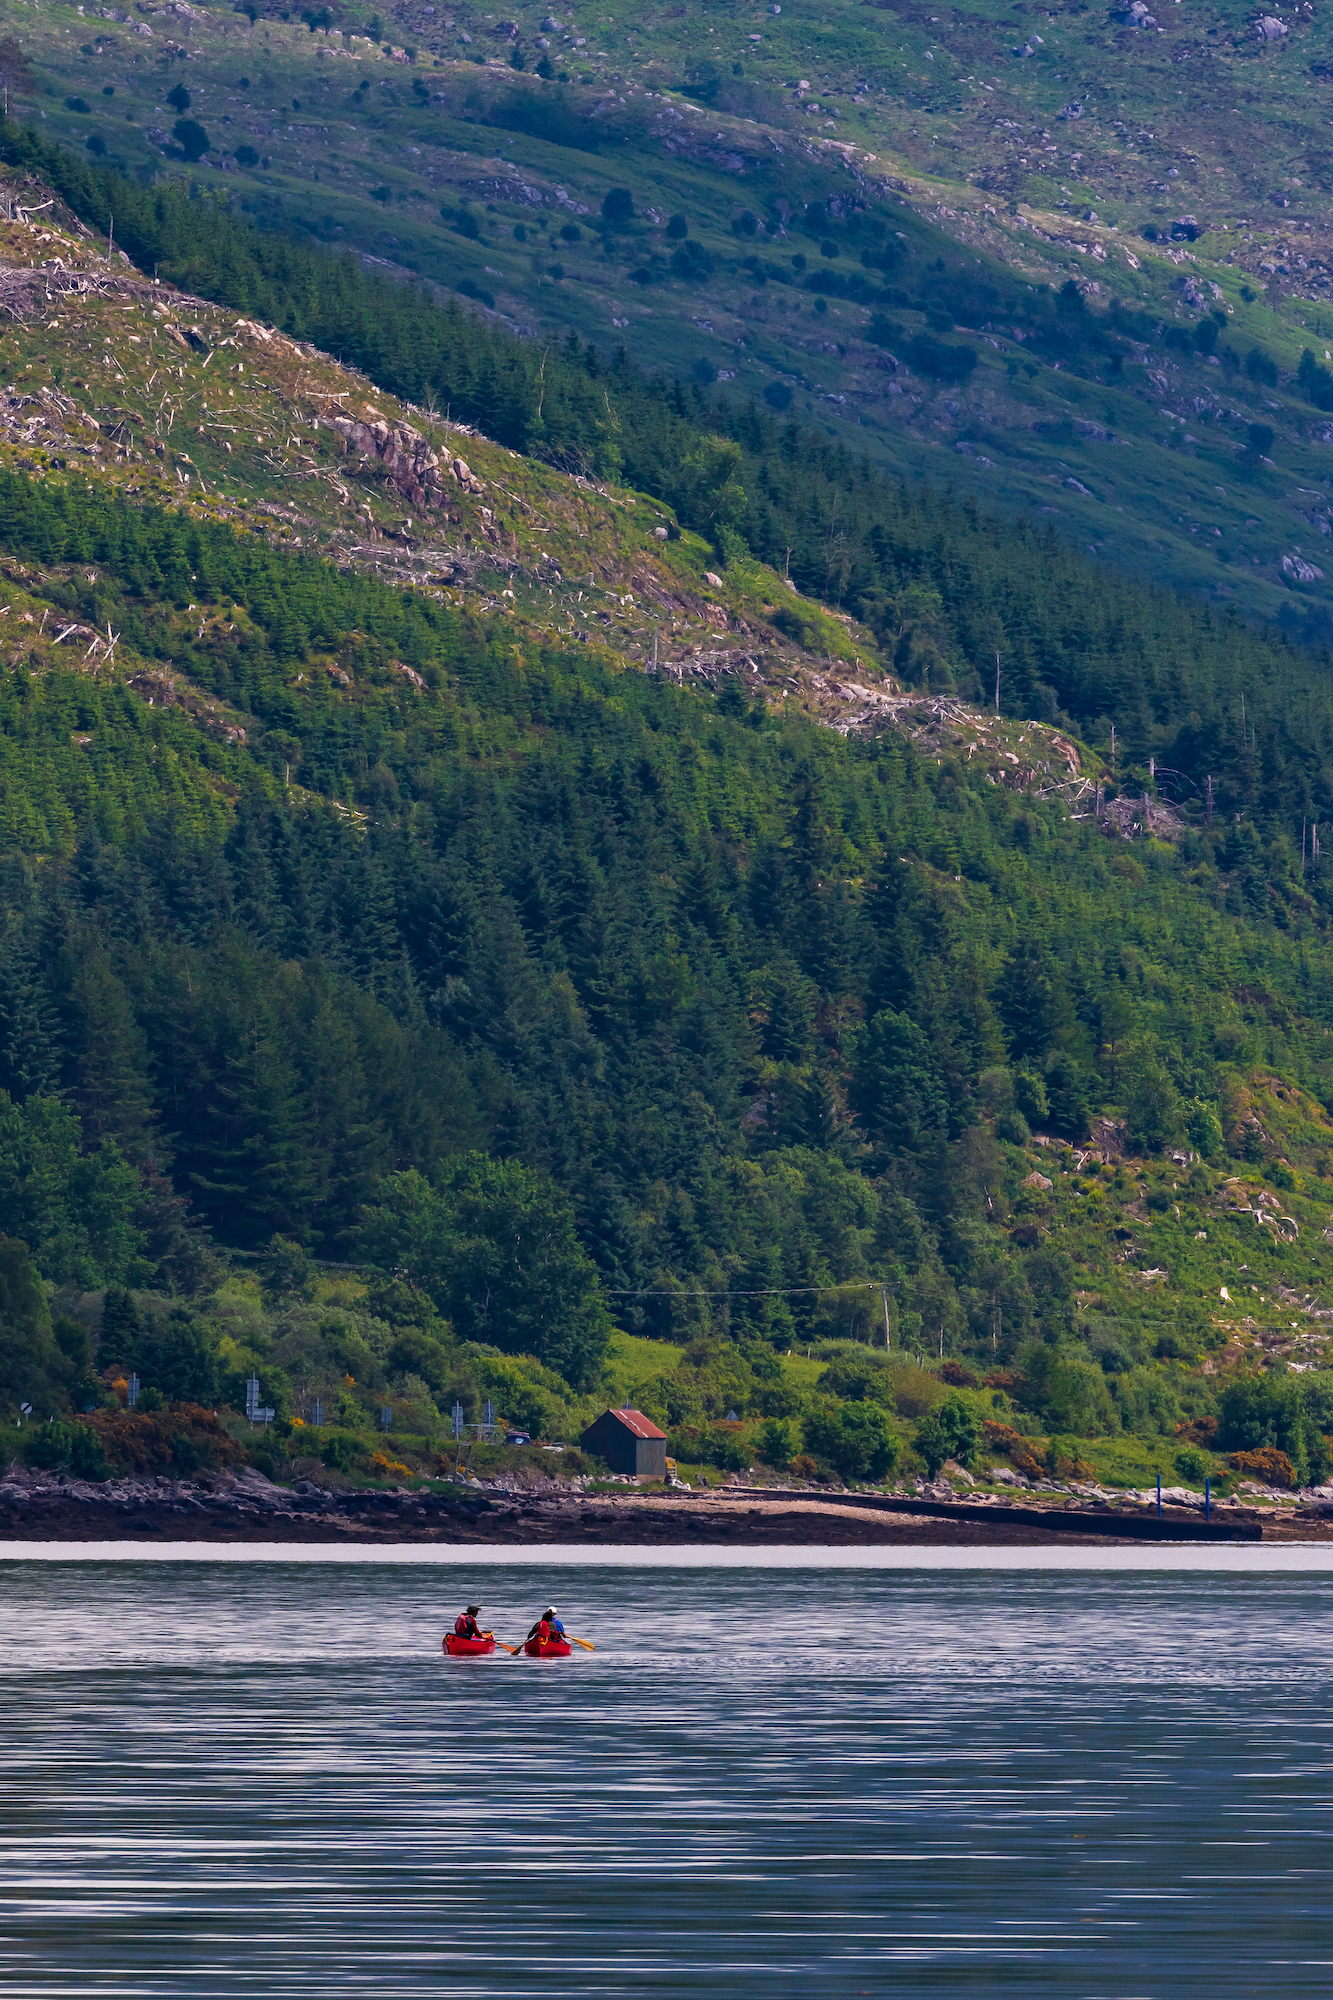 (1390) Two Red Canoes, Jetty on A861, Canoeing on Loch Sunart, Strontian, Ardnamurchan, Scottish Highlands, Scotland. Copyright David Wheater.jpg